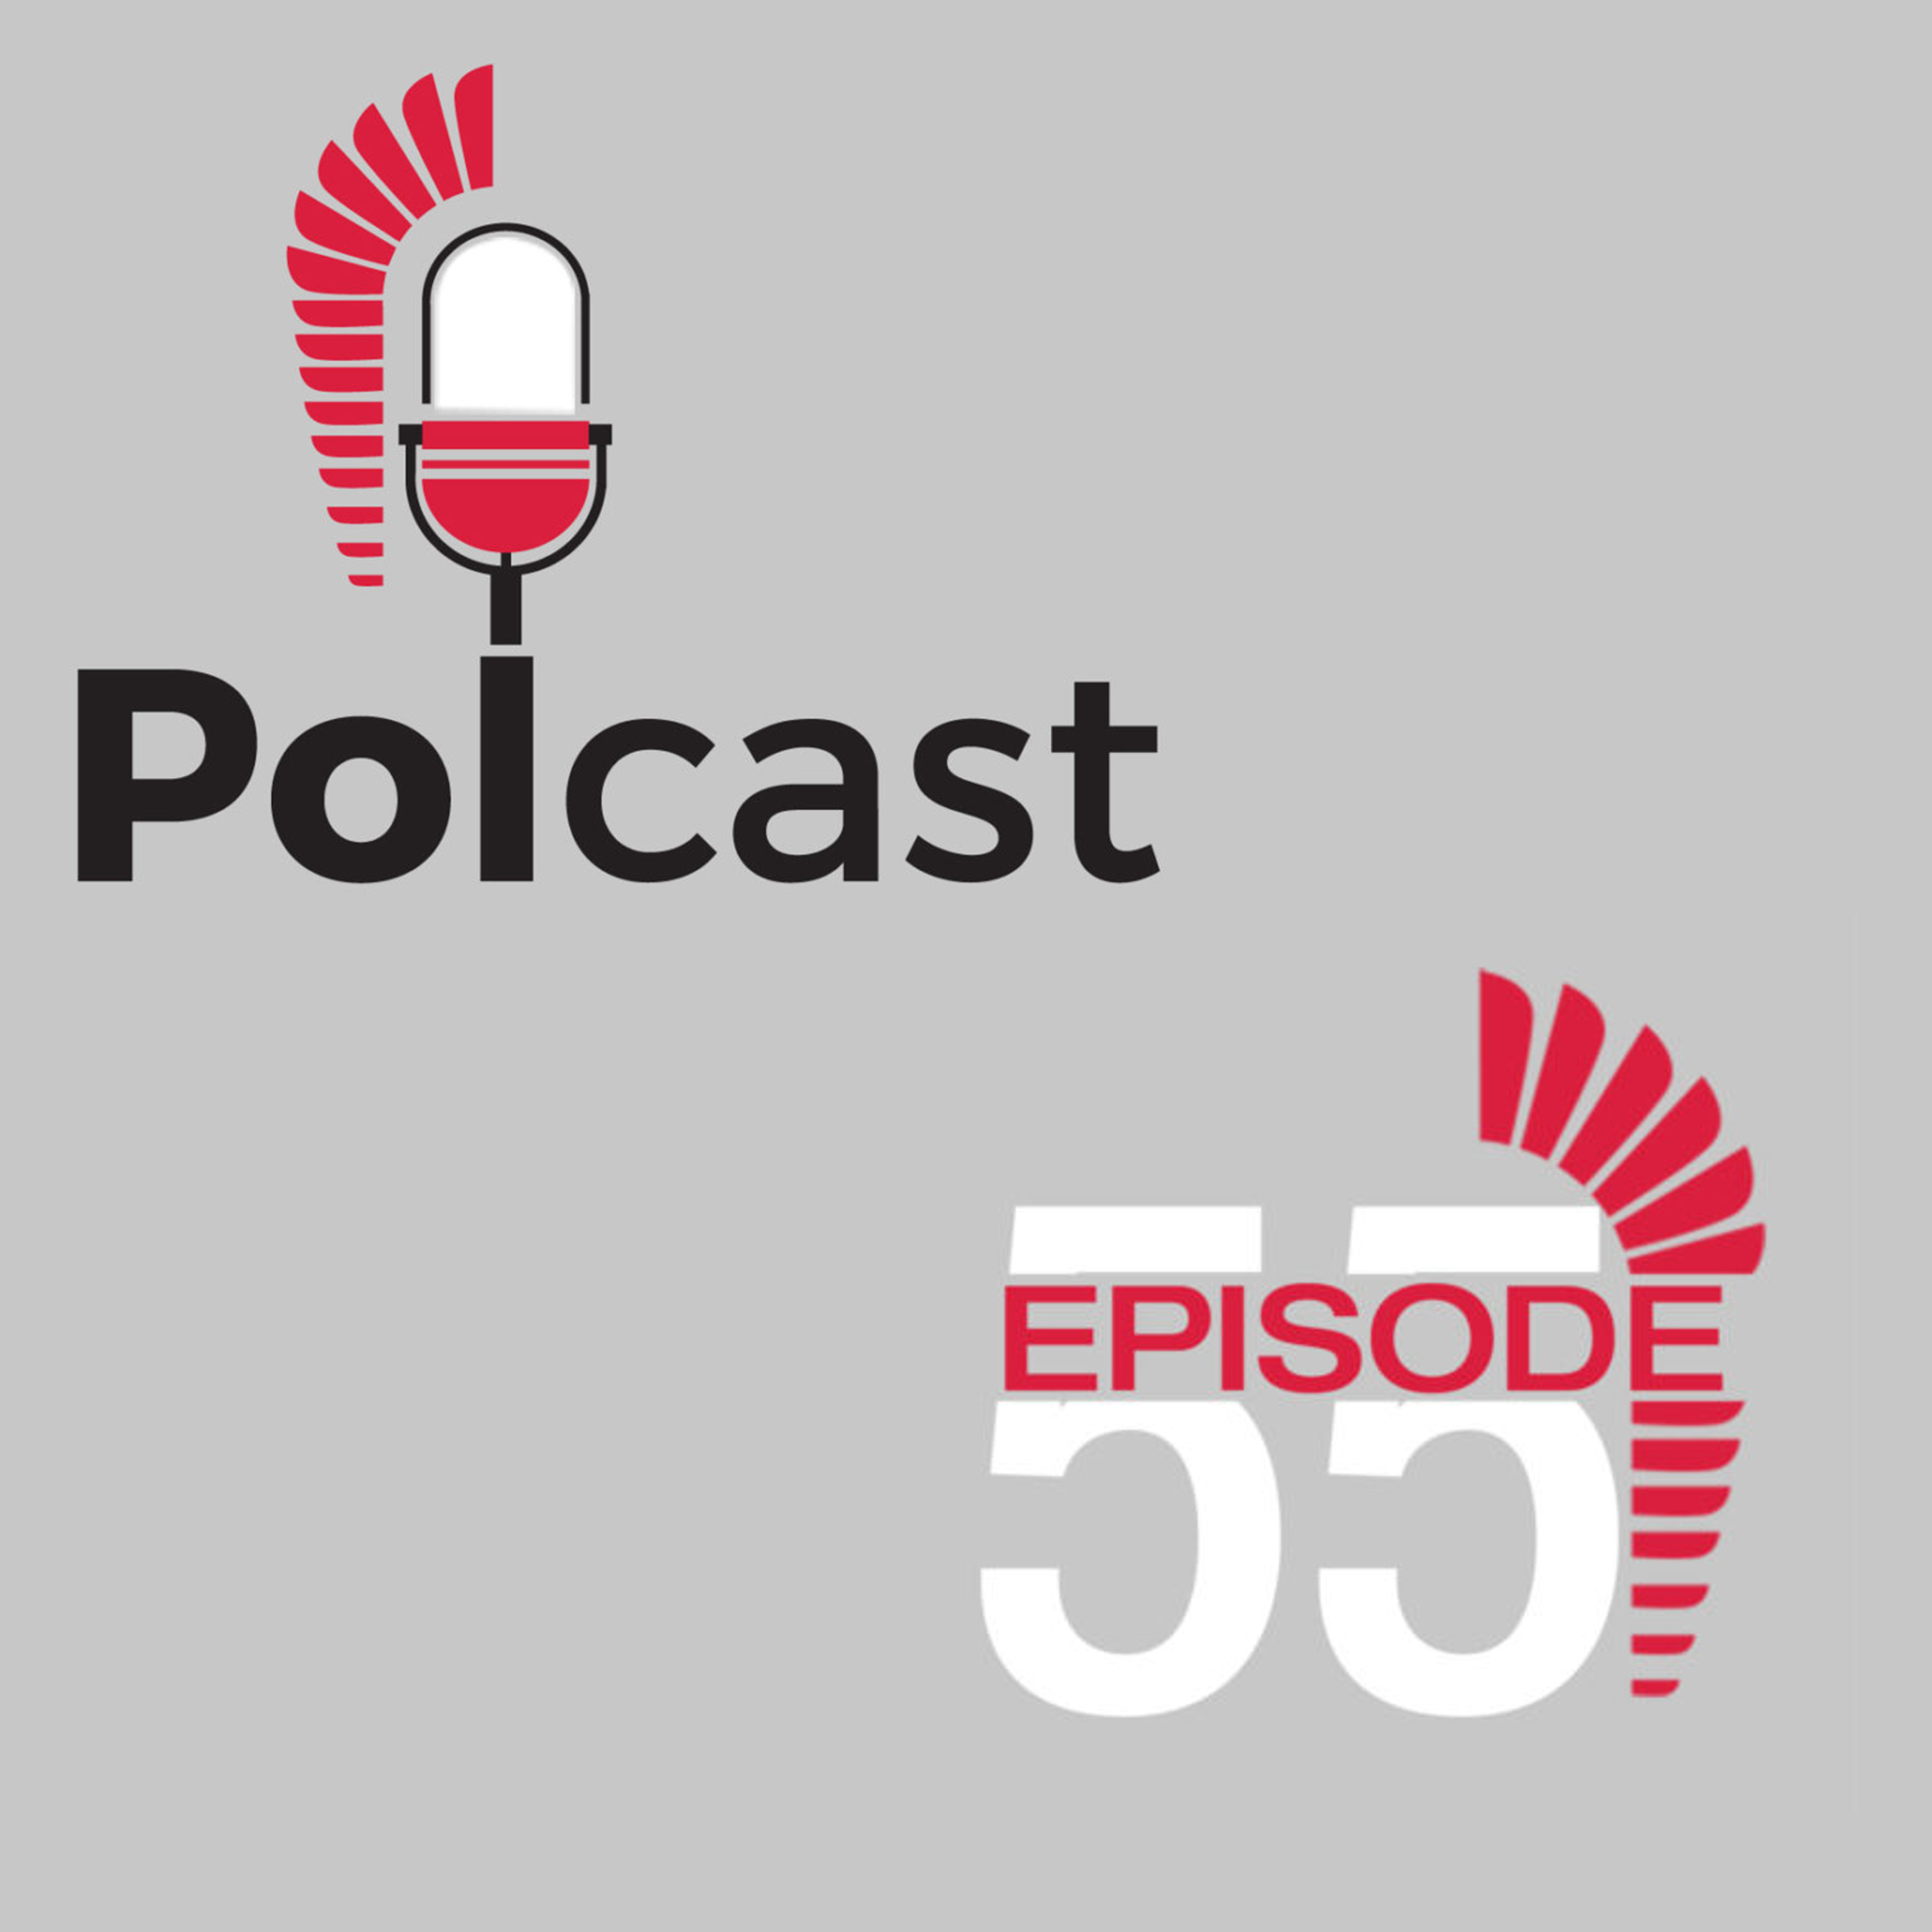 POLcast episode 55